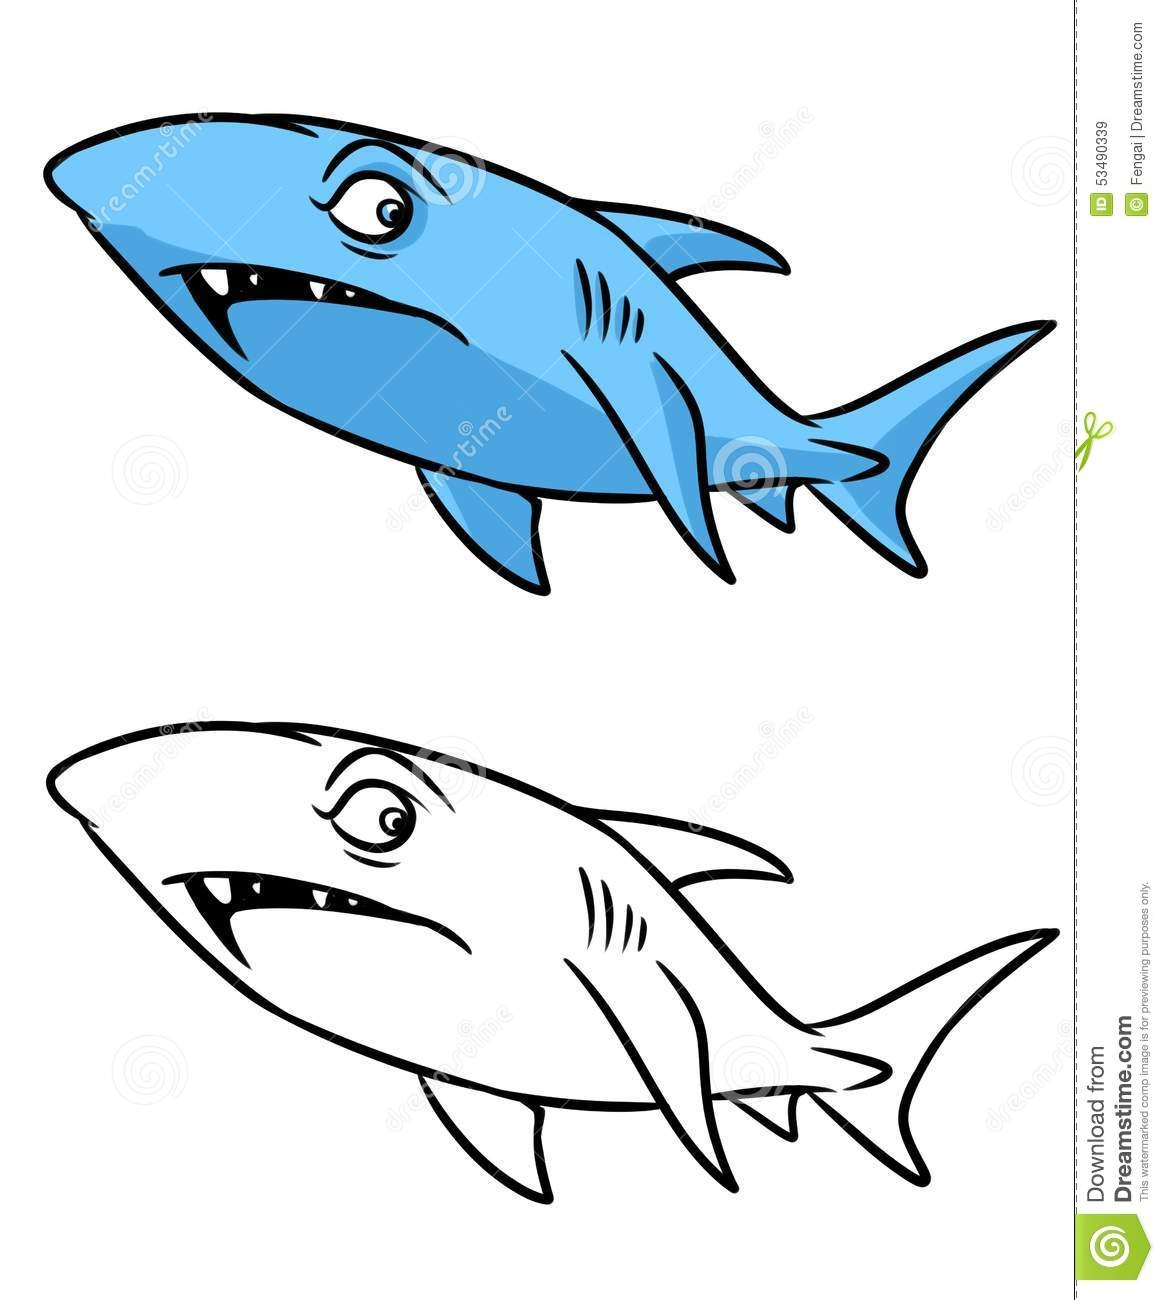 1164x1300 Shark Coloring Pages Luxury Shark Coloring Page Cartoon